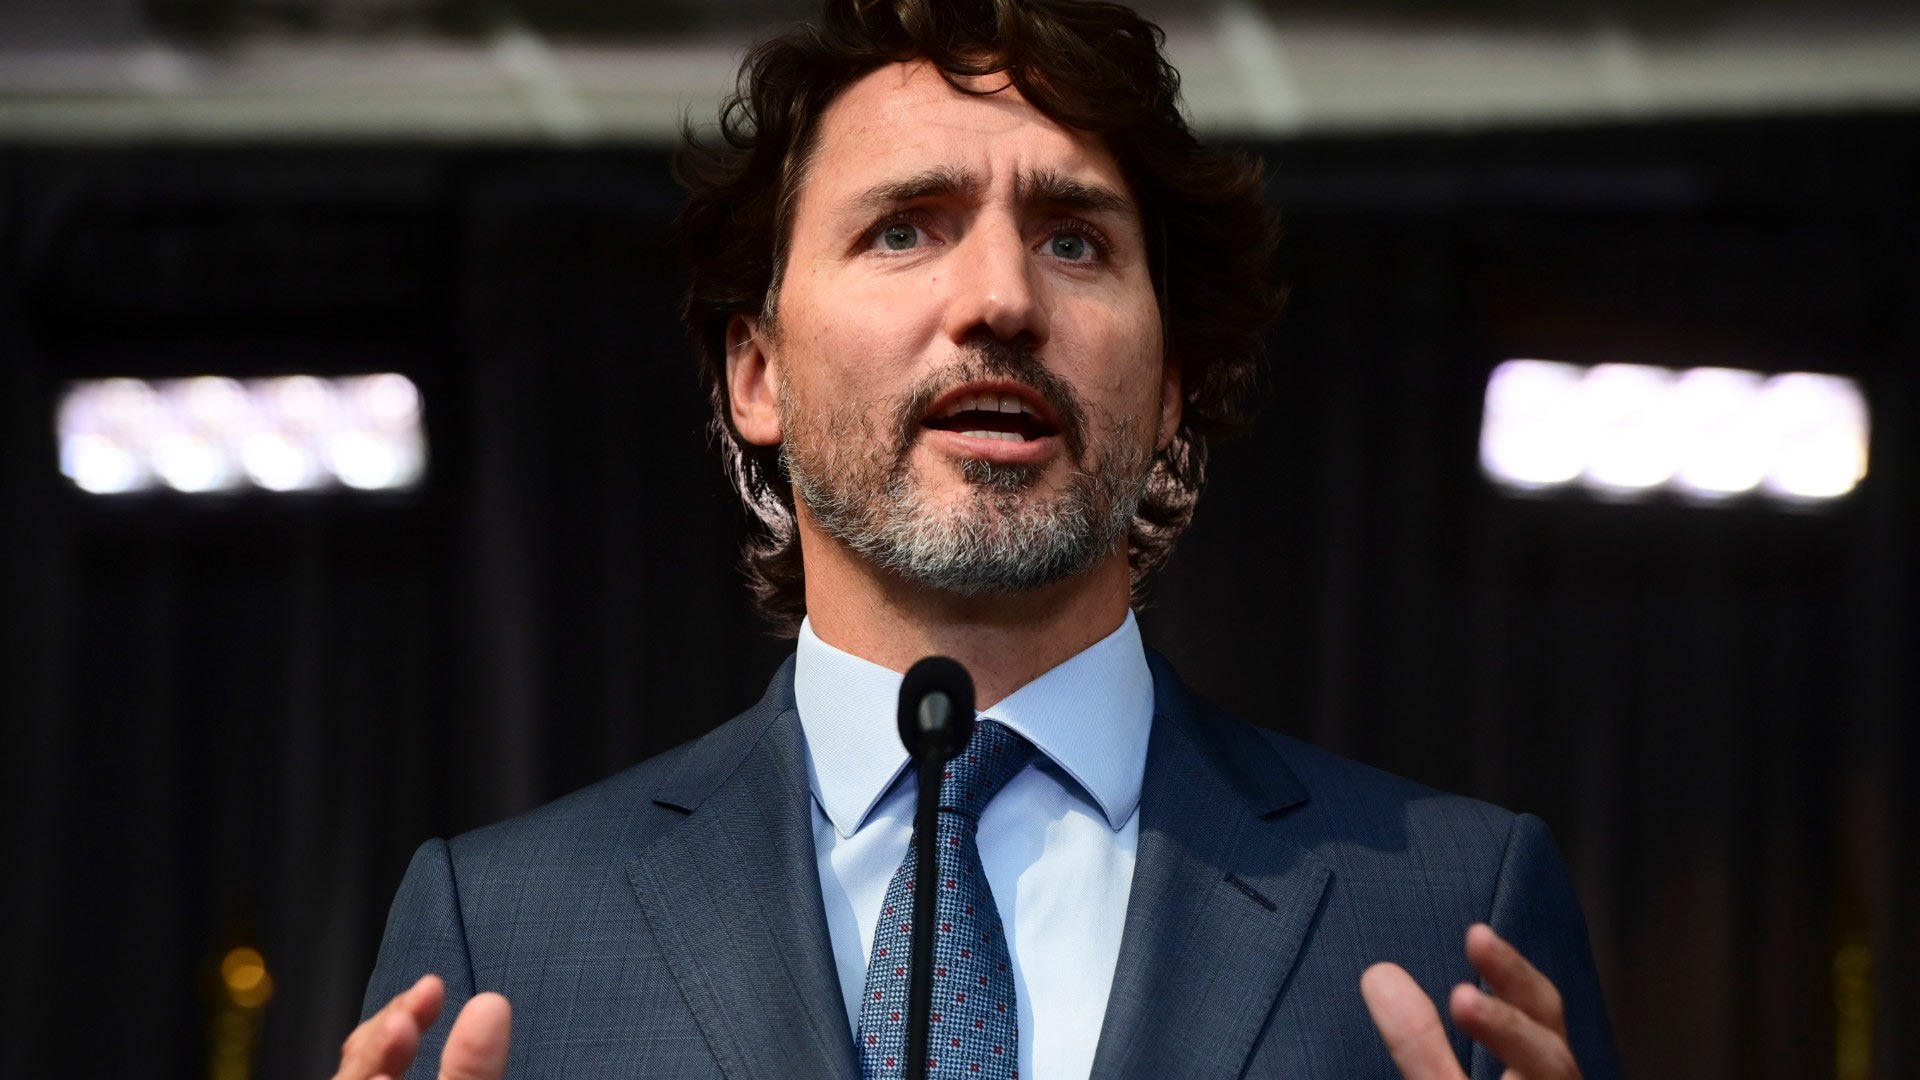 Trudeau ends cabinet retreat with promise to safely kickstart economy, plug gaps in social safety net